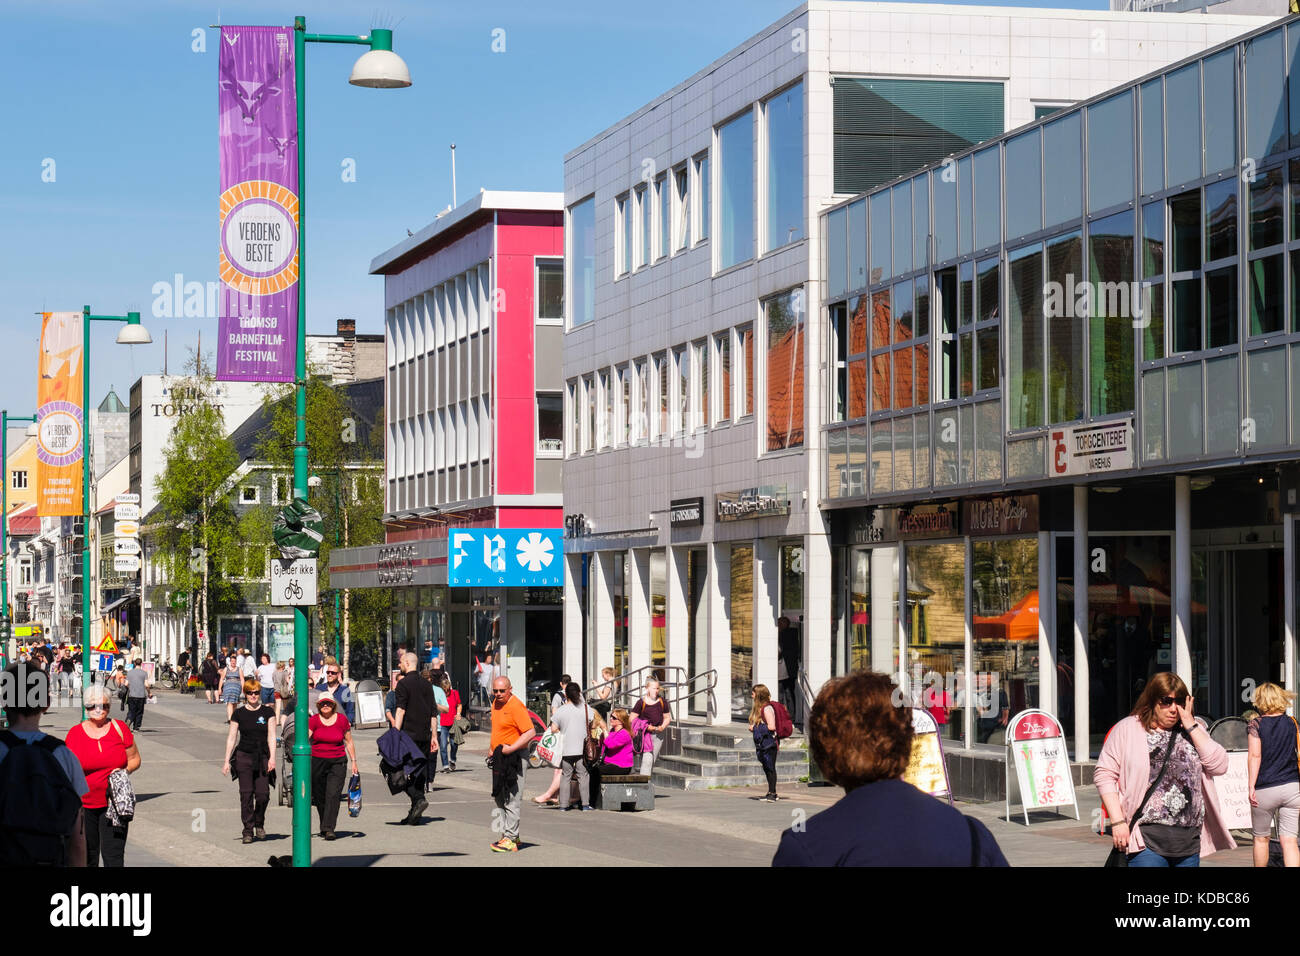 Busy street scene with shoppers and modern shops in city centre. Storgata, Tromso, Troms county, Norway, Scandinavia - Stock Image